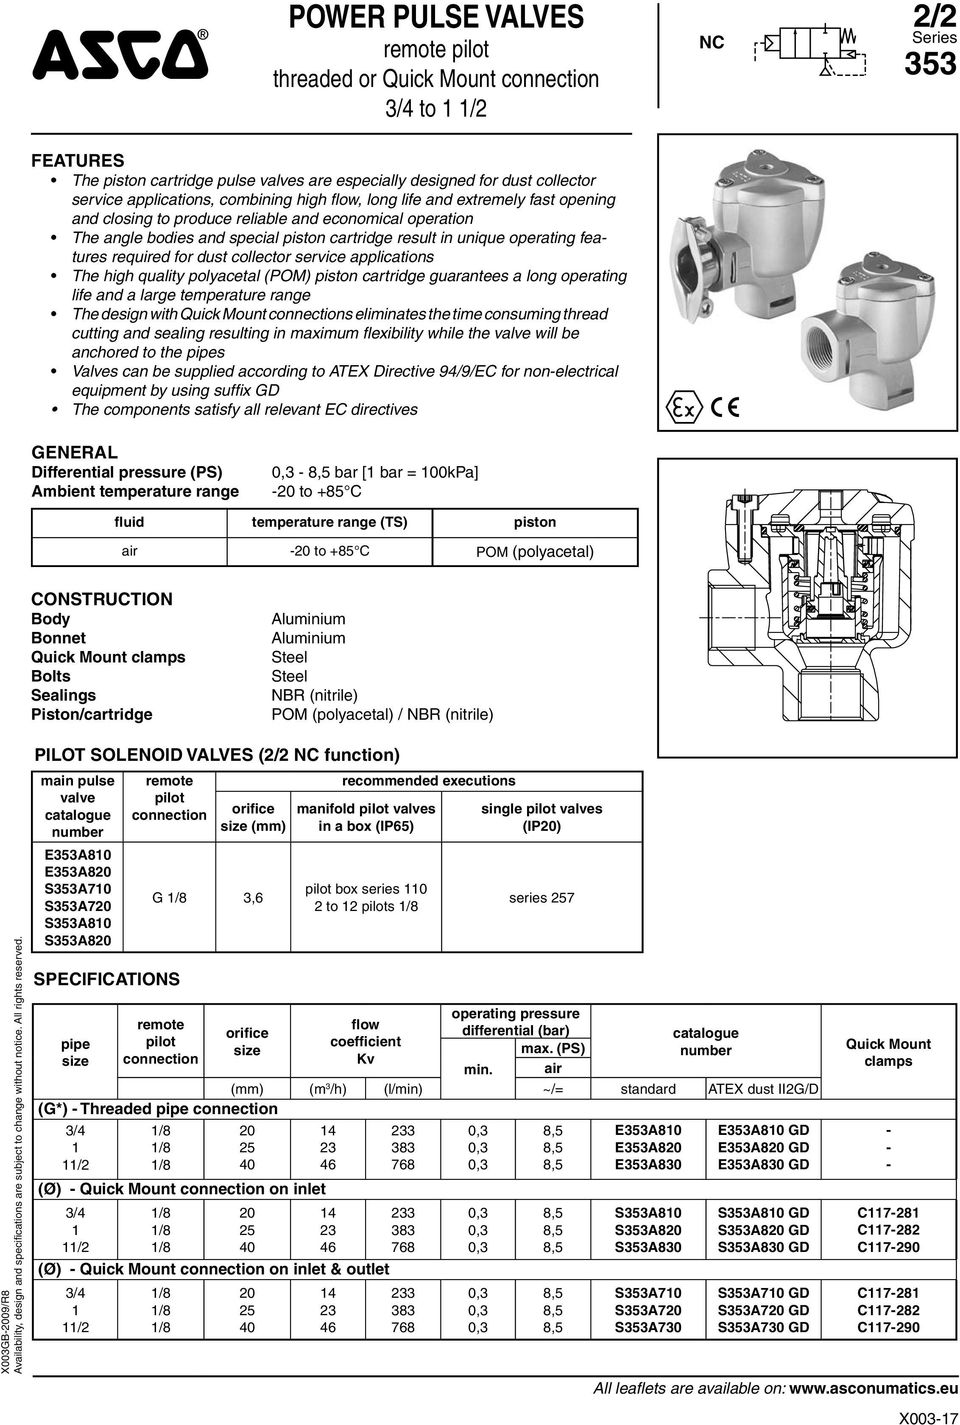 collector service applications The high quality polyacetal (POM) piston cartridge guarantees a long operating life and a large temperature range The design with Quick Mount s eliminates the time